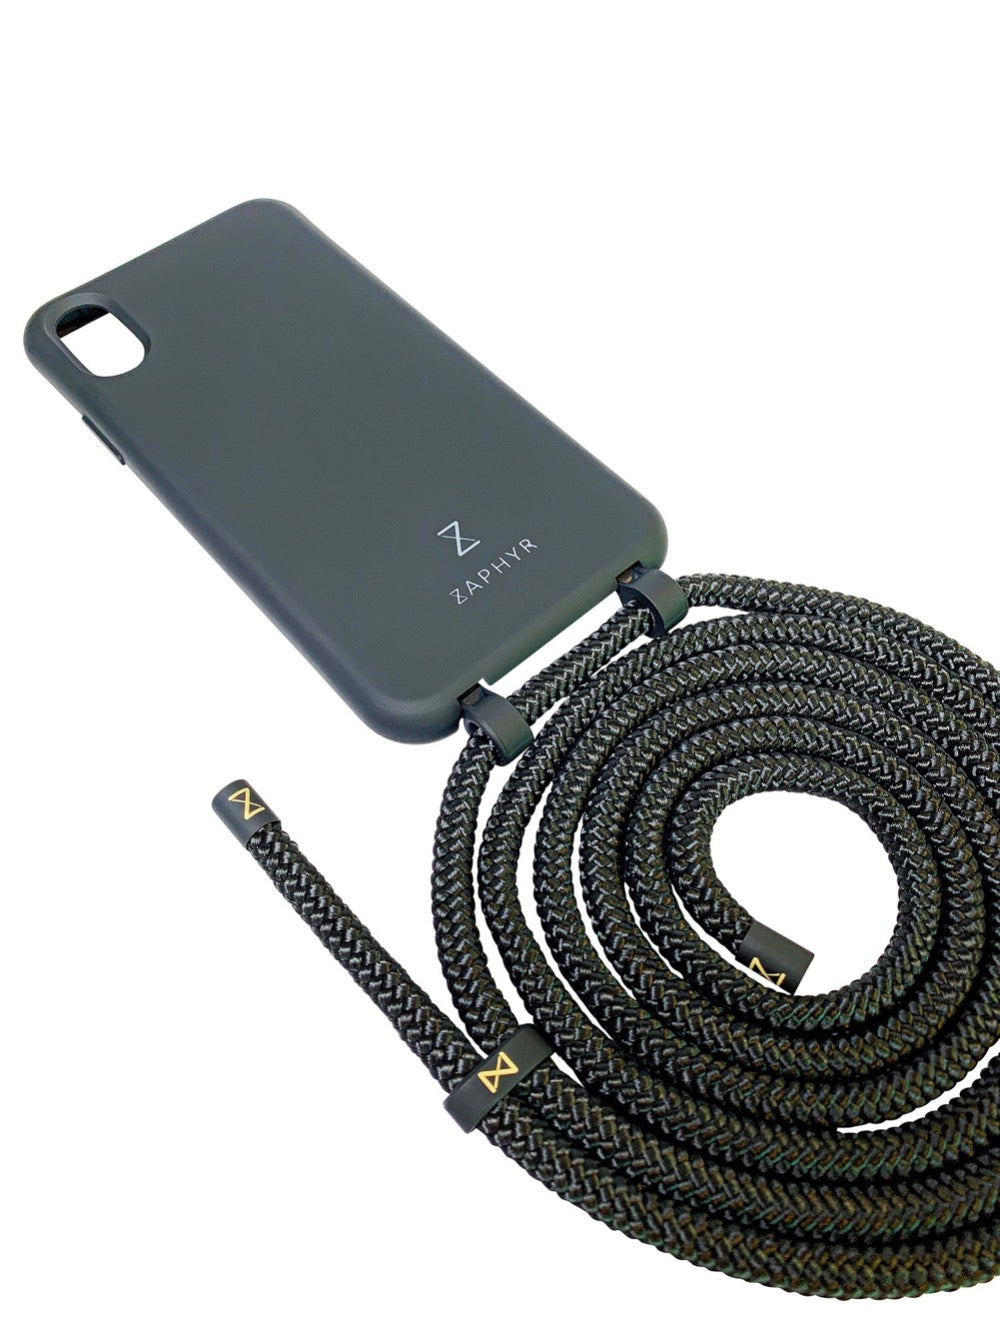 Zaphyr phone chain in black with detachable strap